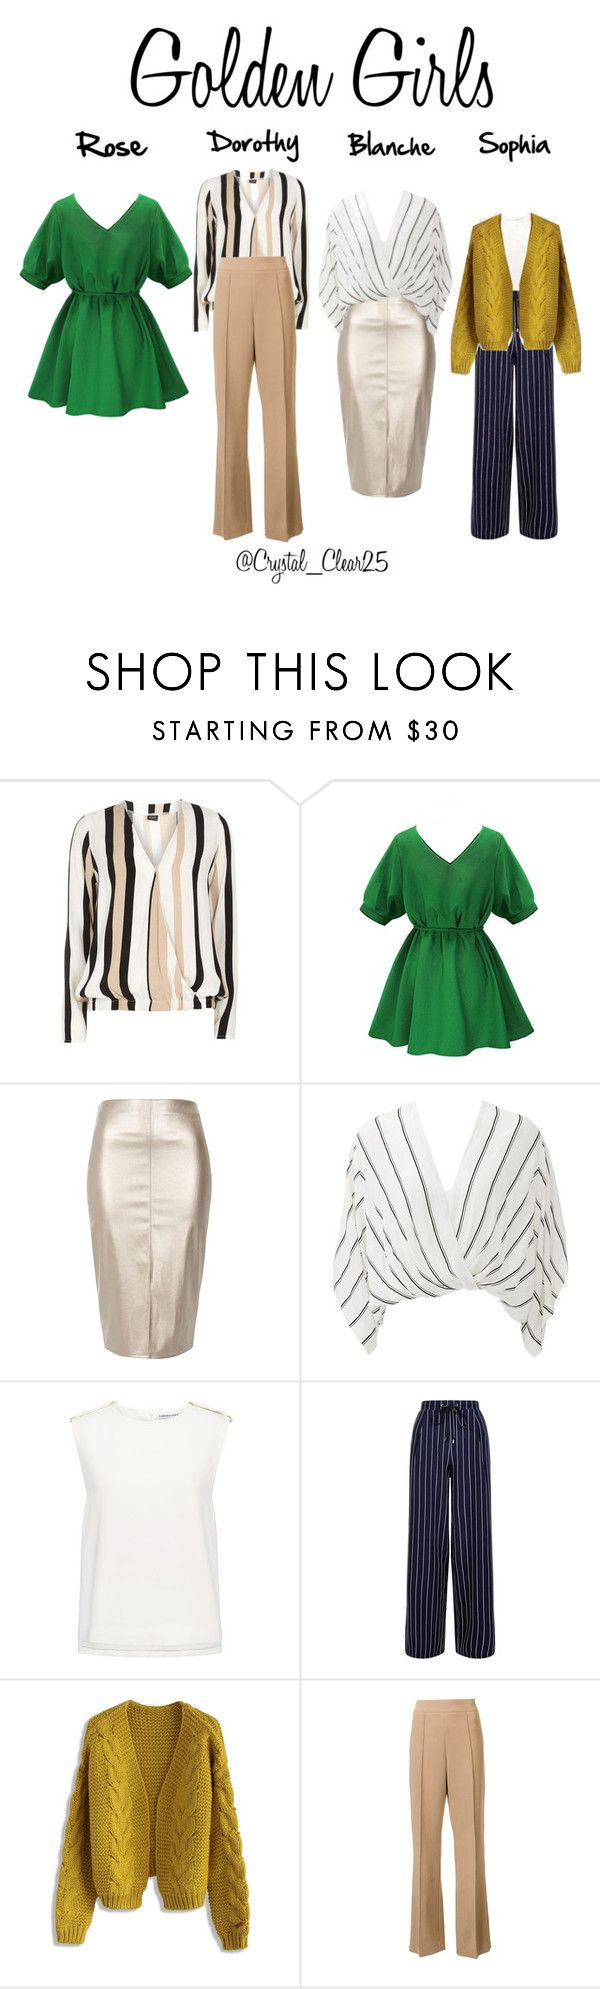 """""""Golden Girls"""" by crystal-castleberry on Polyvore featuring Dorothy Perkins, River Island, Free People, Finders Keepers, New Look, Chicwish, Victor Alfaro and modern"""